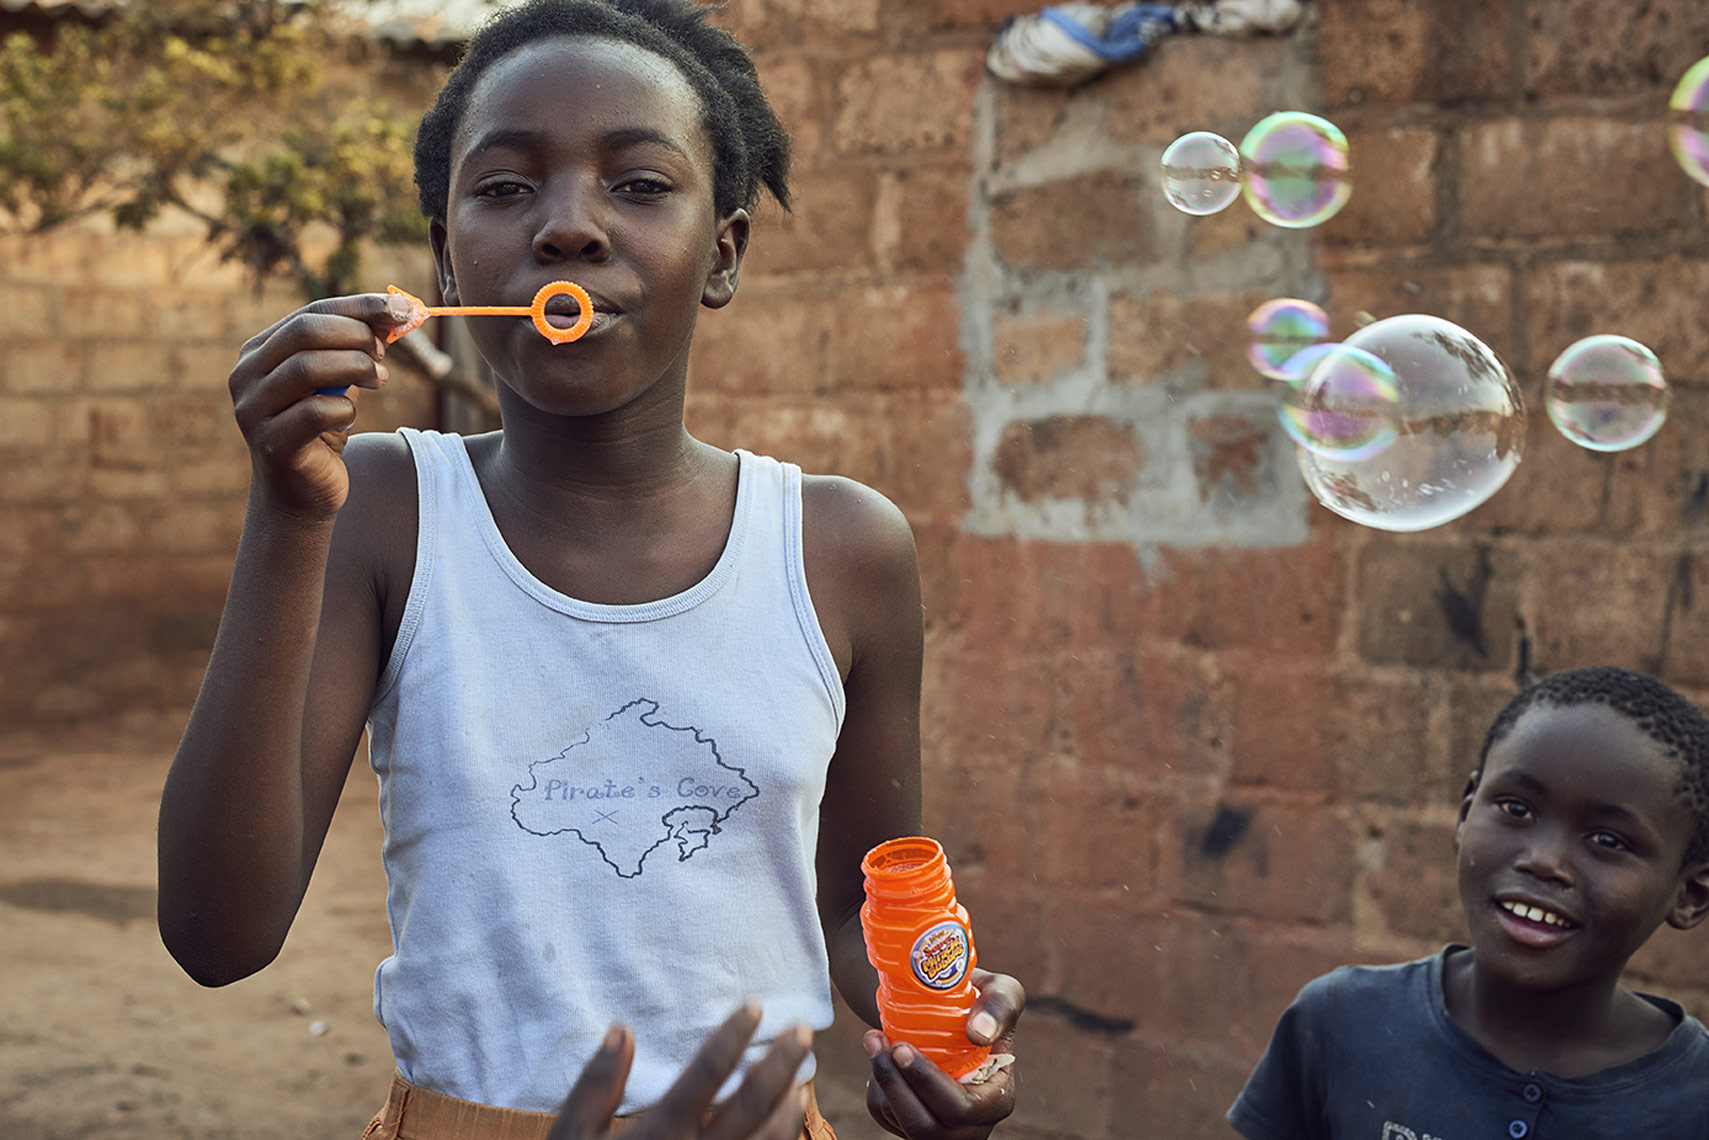 Playful-African-kids-blowing-bubbles